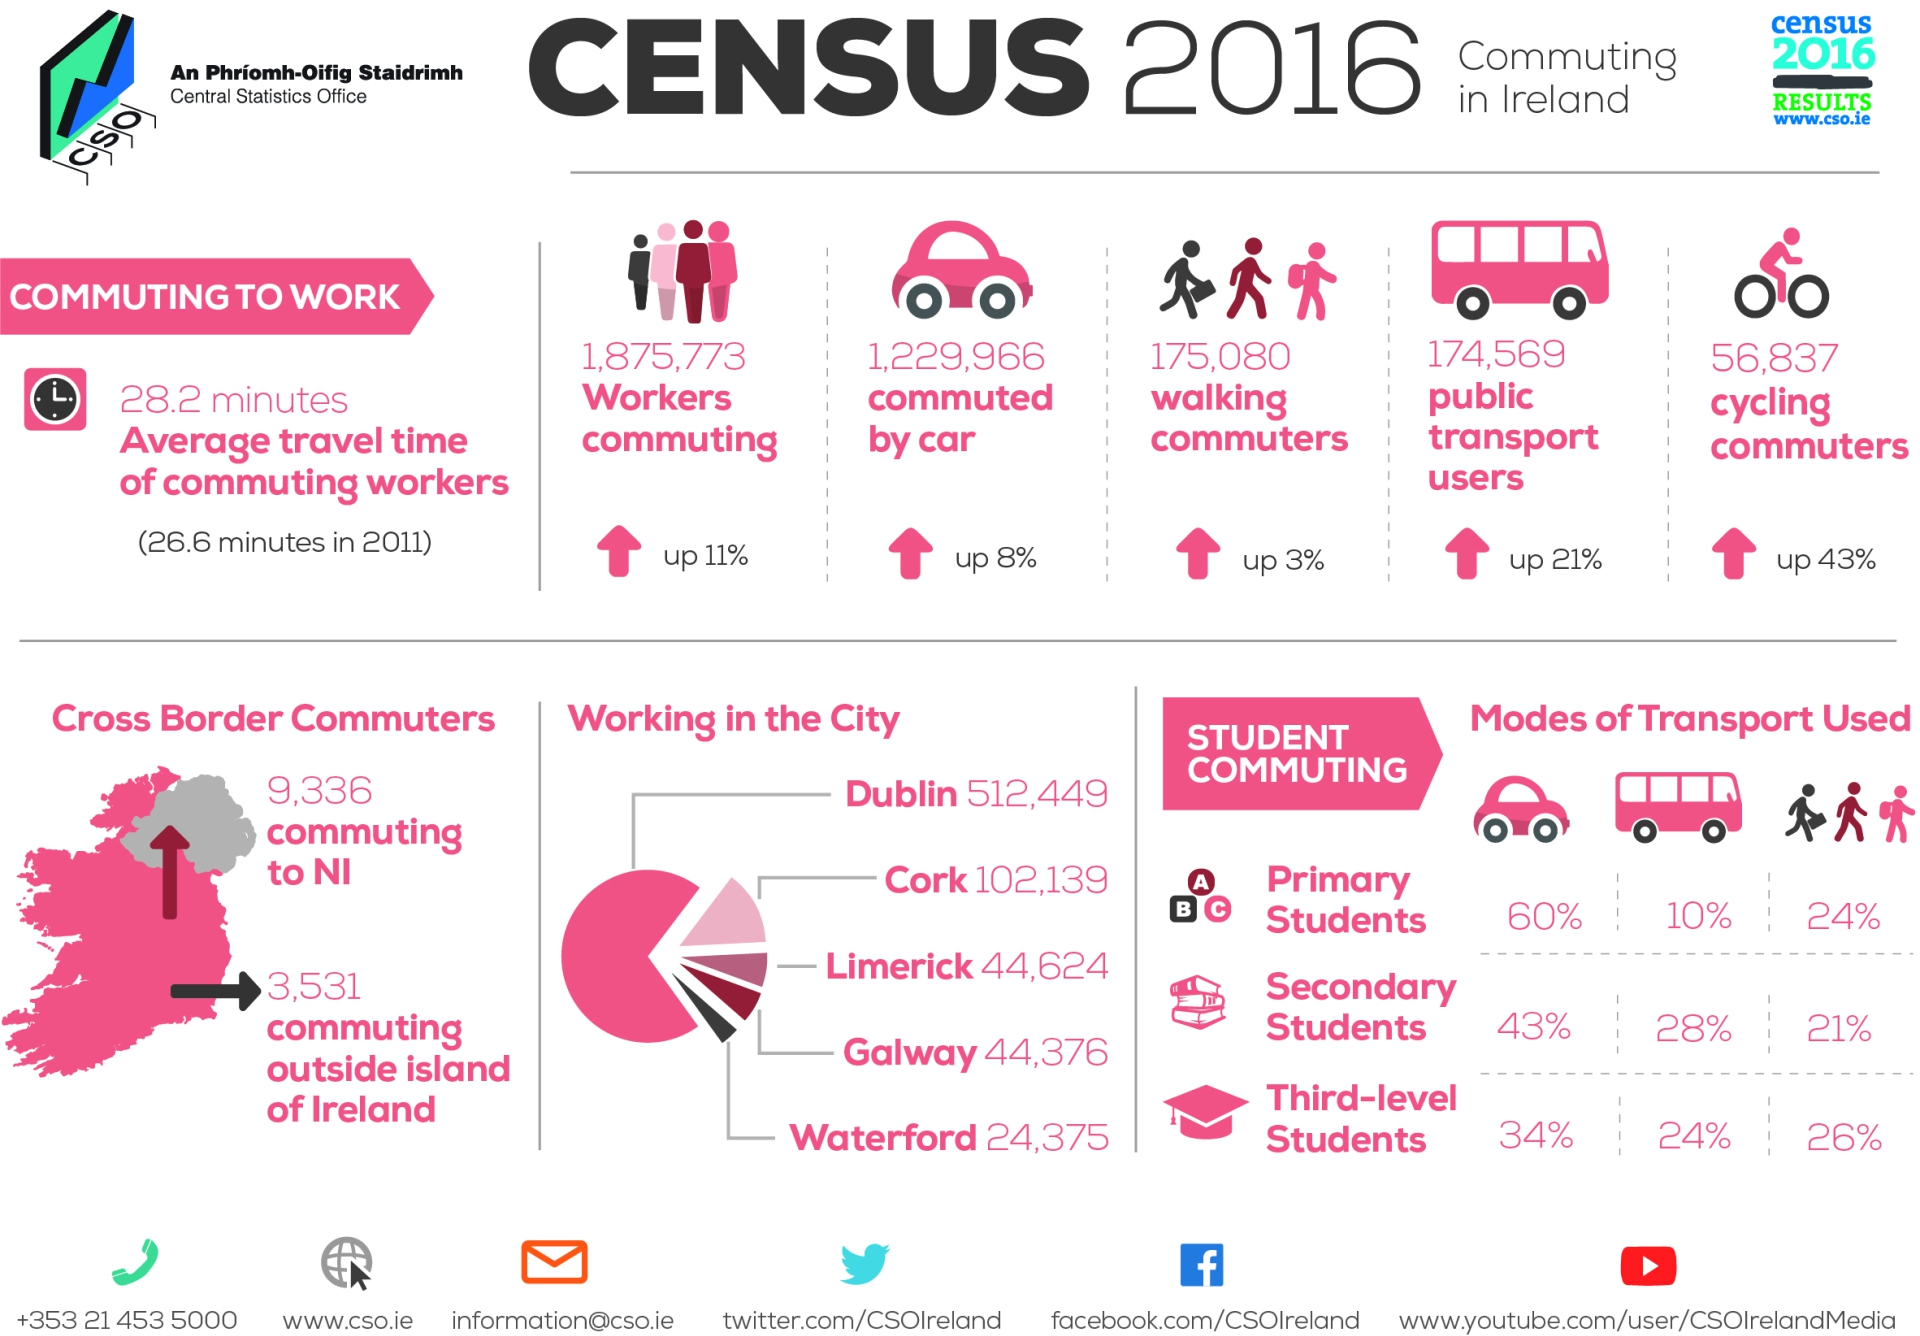 73.2% of Mayo commuters travel to work by auto